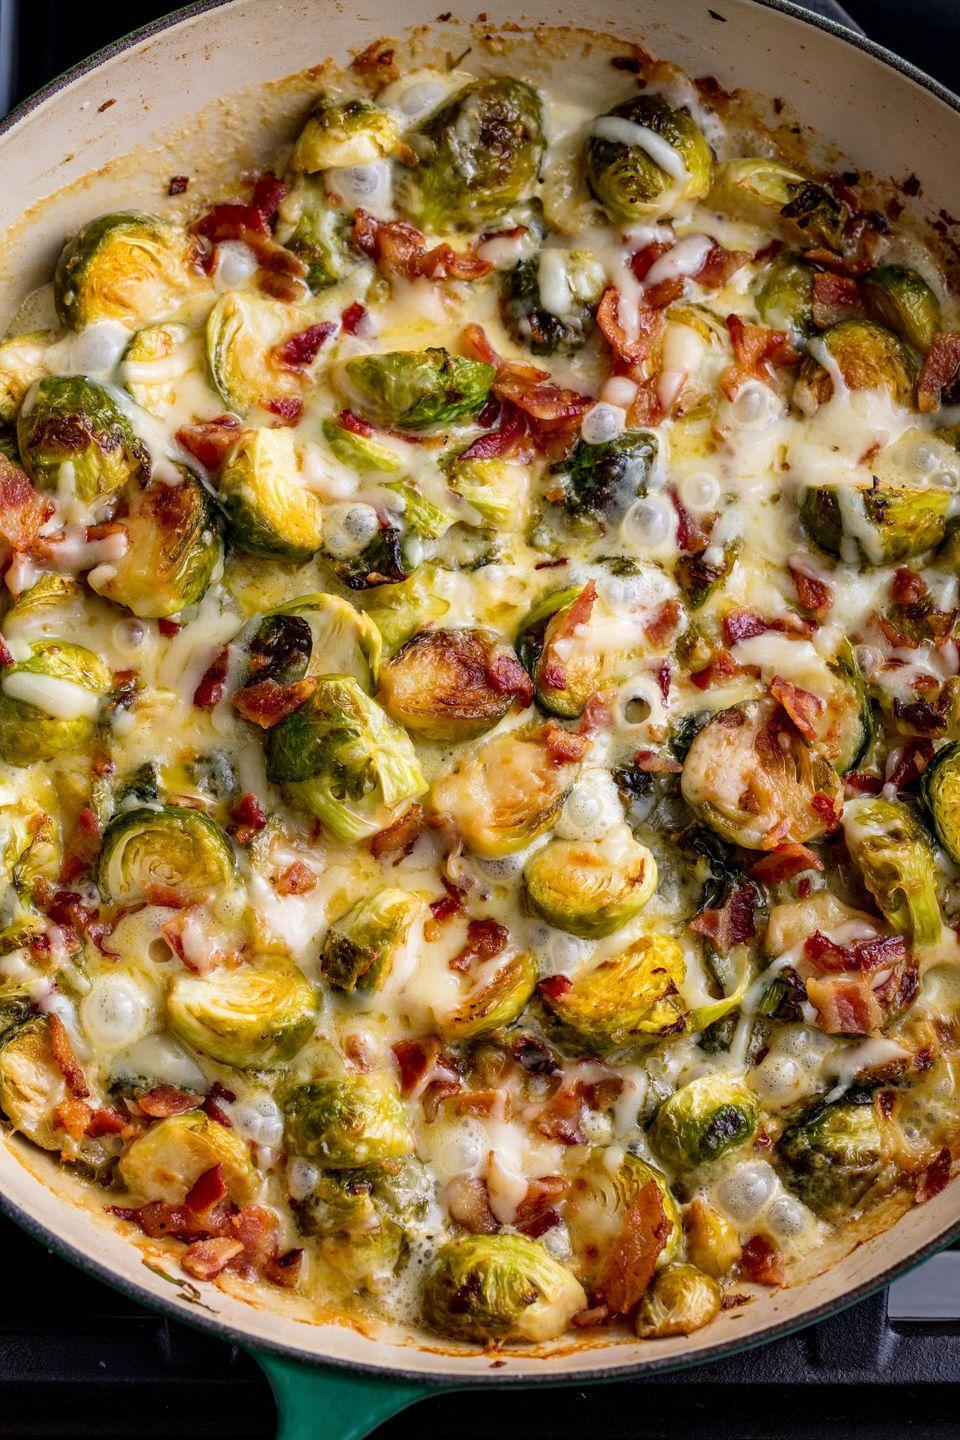 "<p>The one side that will have everyone freaking out and running for seconds.</p><p>Get the recipe from <a href=""https://www.delish.com/holiday-recipes/thanksgiving/recipes/a44632/cheesy-brussels-sprout-casserole-recipe/"" rel=""nofollow noopener"" target=""_blank"" data-ylk=""slk:Delish"" class=""link rapid-noclick-resp"">Delish</a>.</p>"